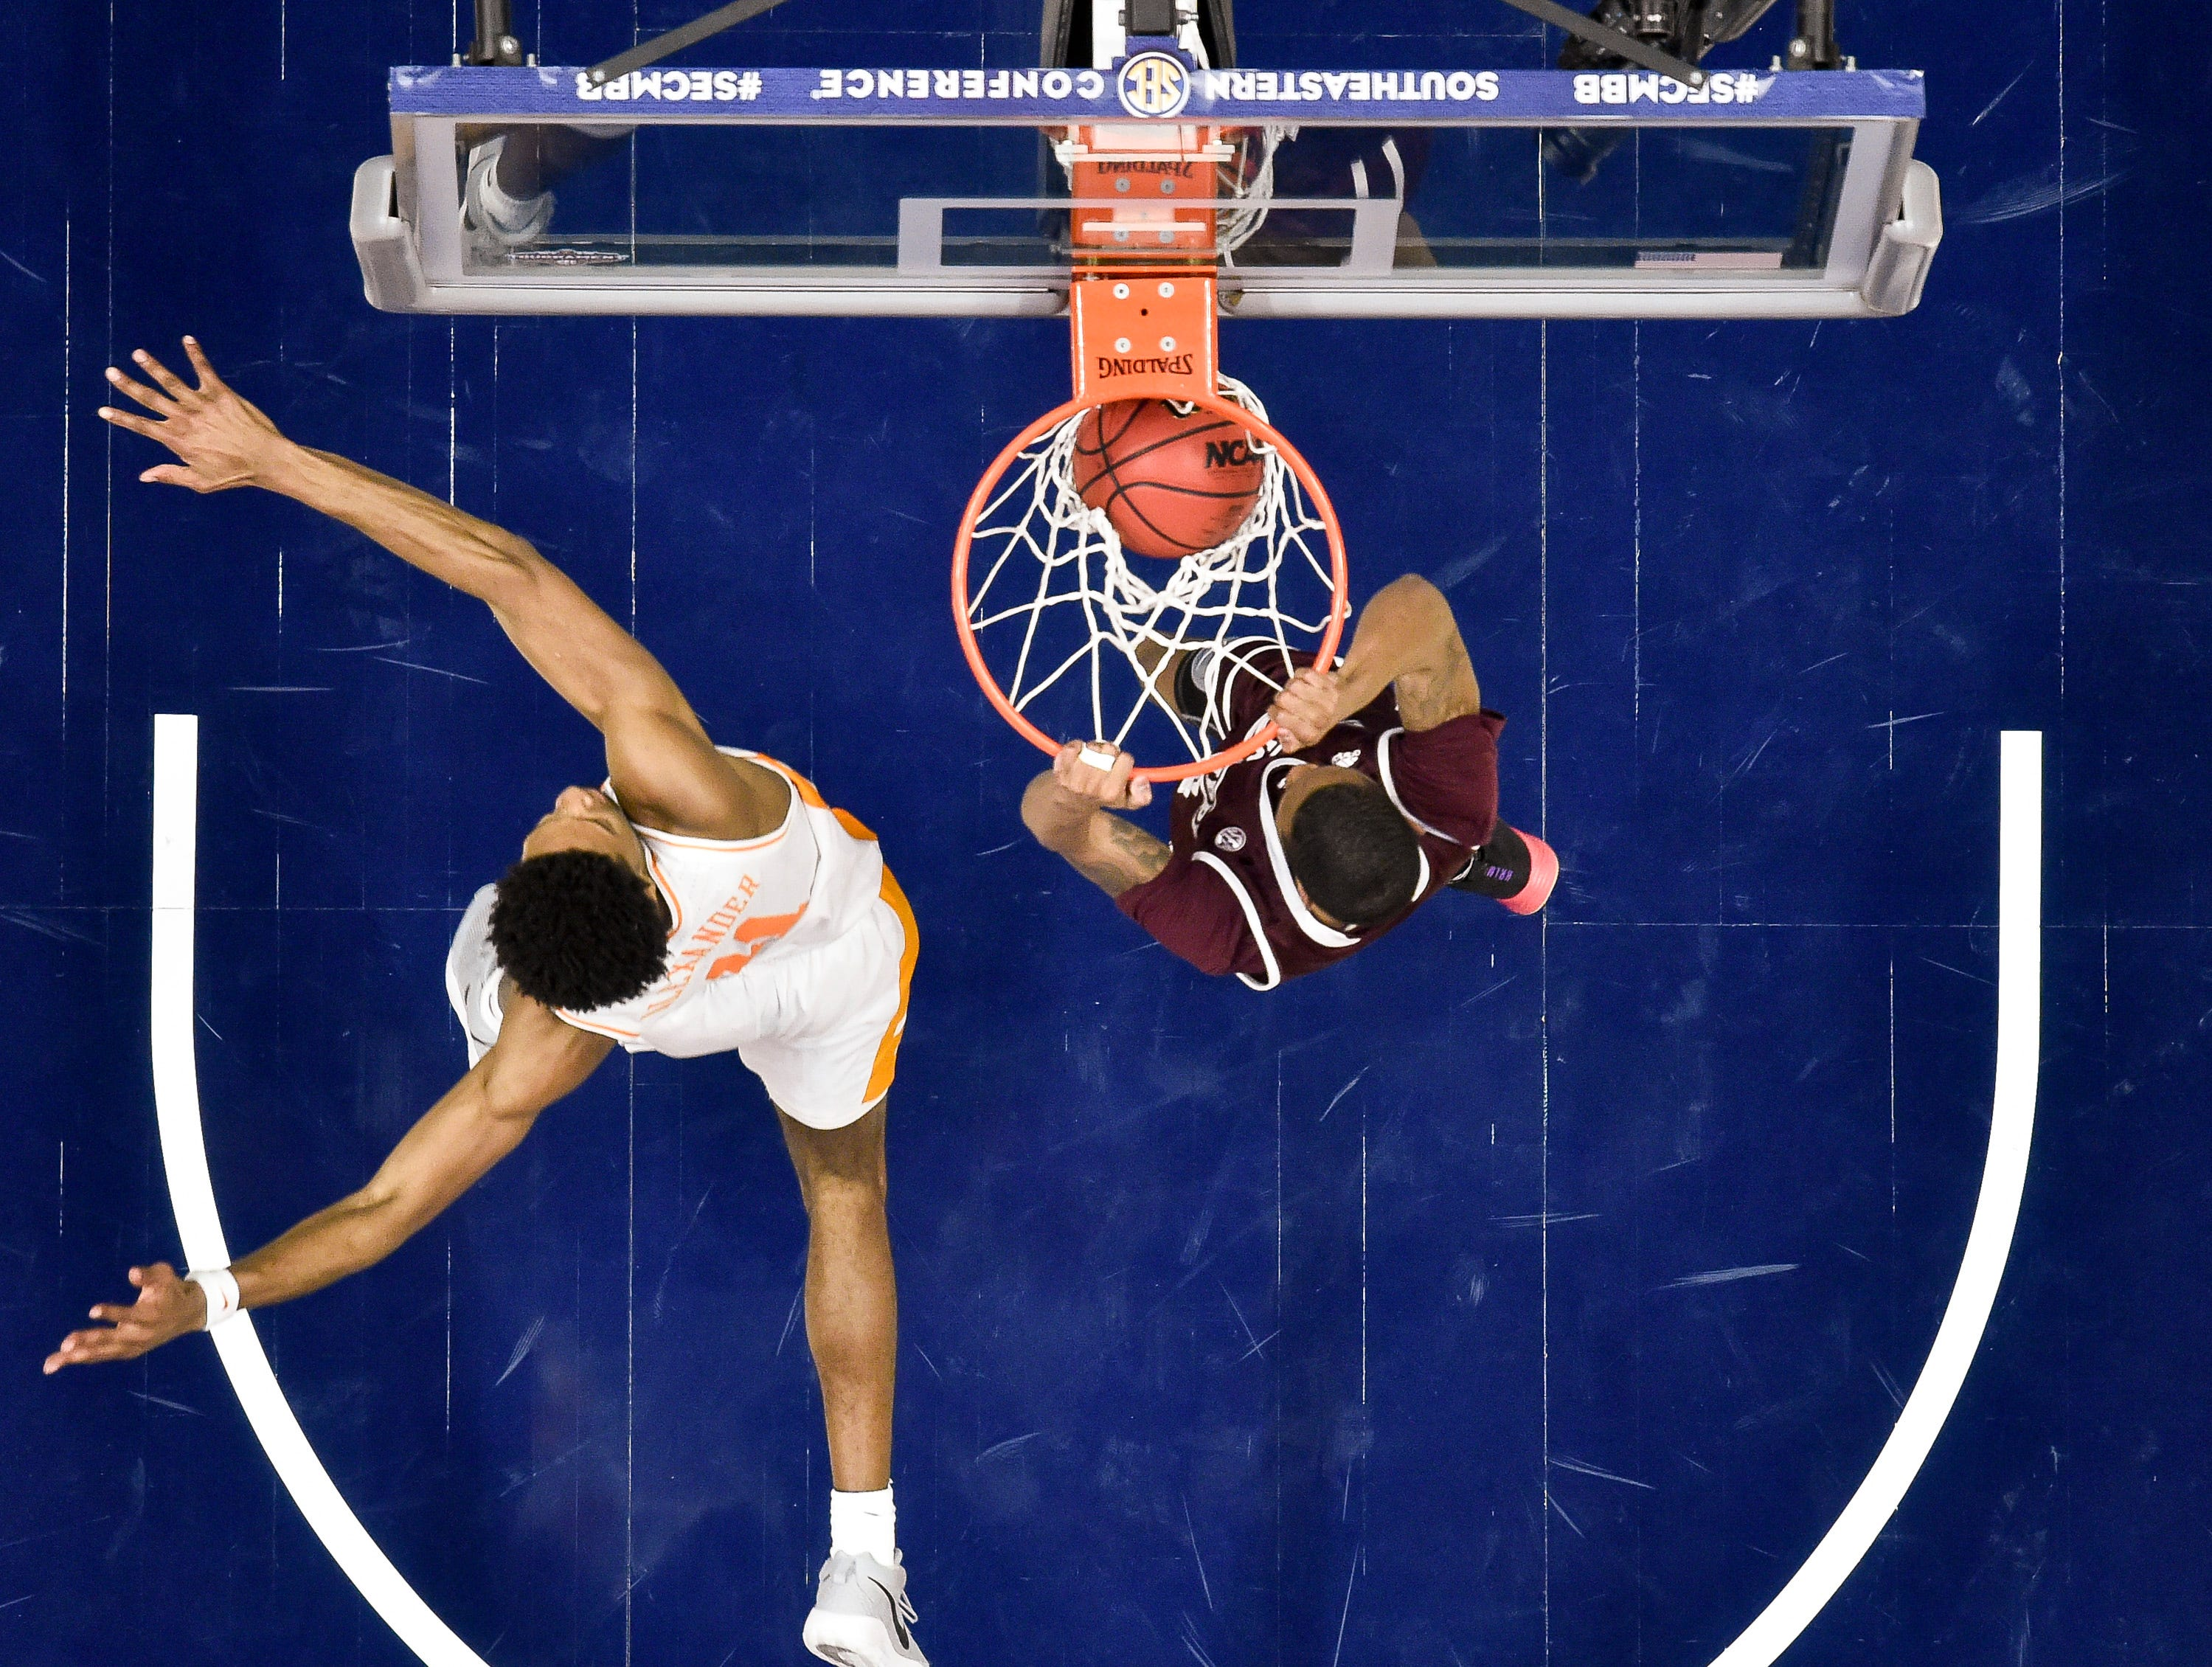 Mississippi State guard Tyson Carter (23) dunks past Tennessee forward Kyle Alexander (11) during the second half of the SEC Men's Basketball Tournament game at Bridgestone Arena in Nashville, Tenn., Friday, March 15, 2019.